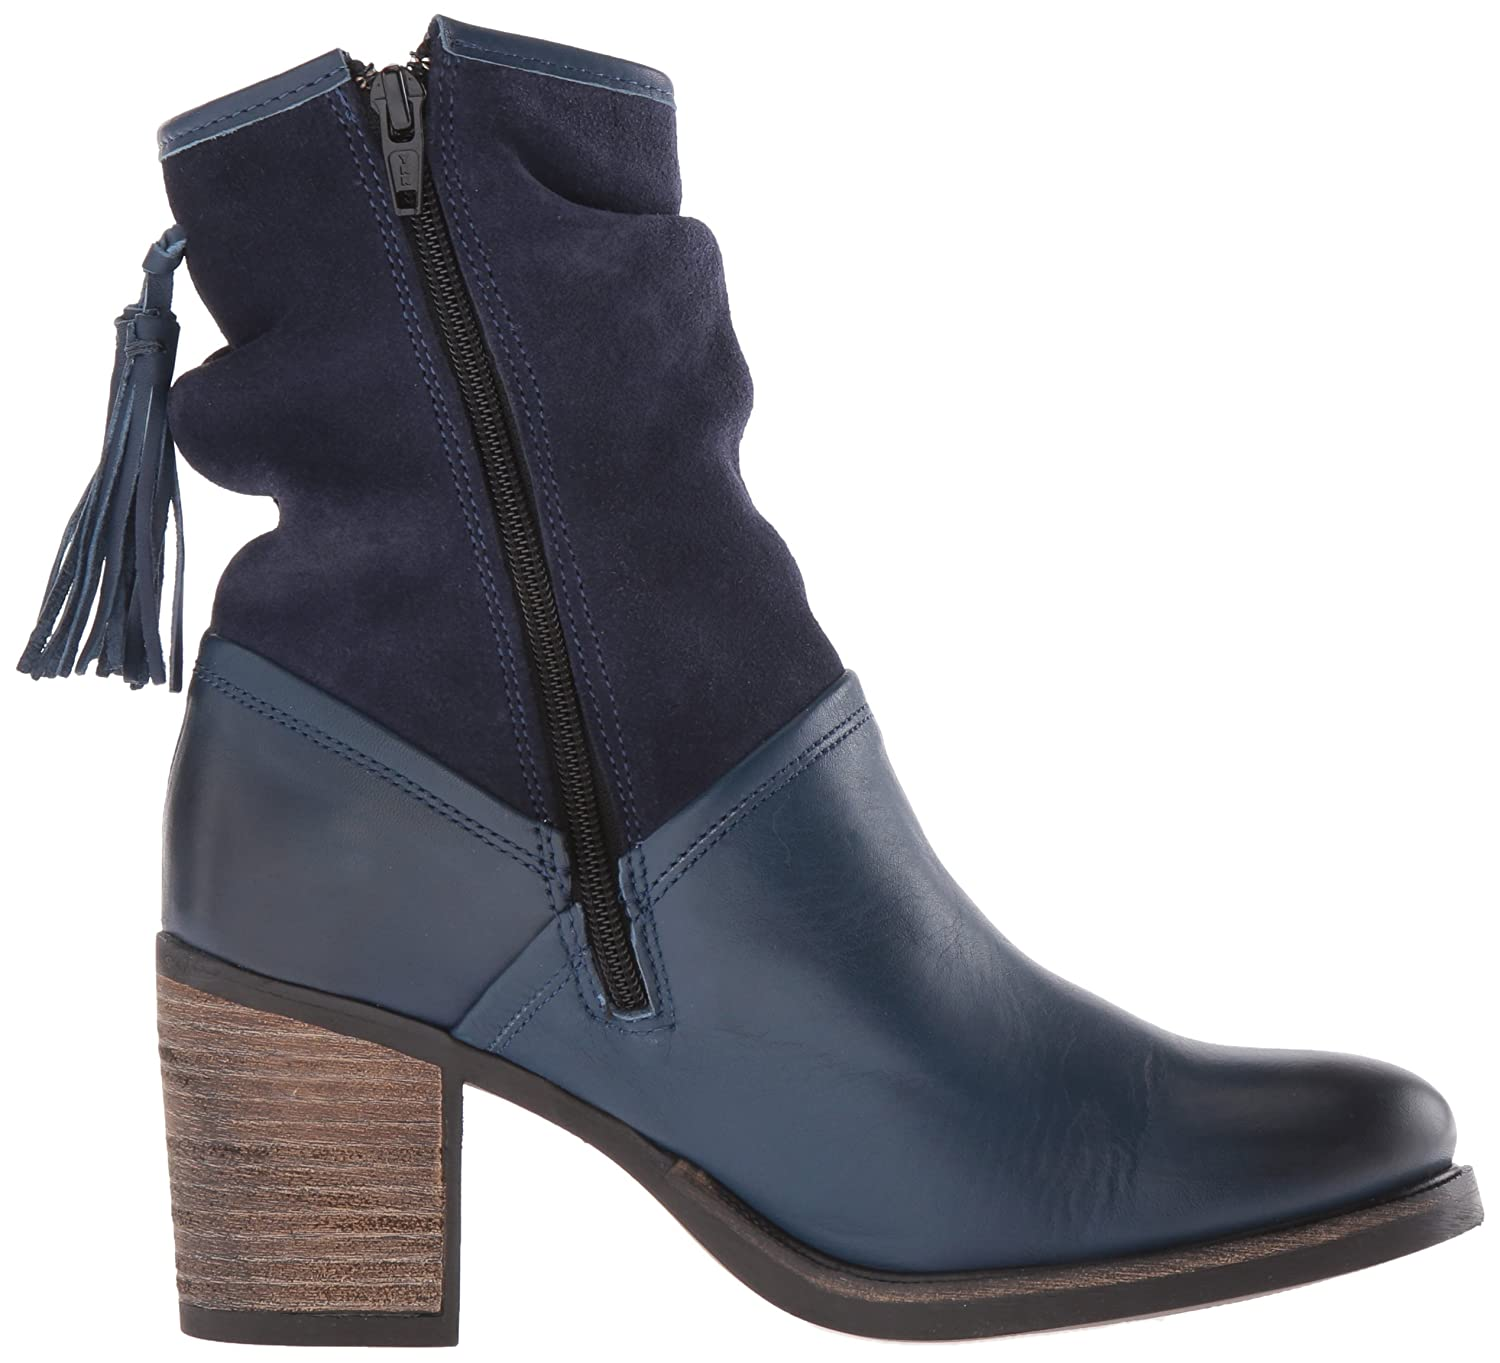 Bos. & Co. Women's Bailee Snow Boot B01CSH0386 40 EU/9-9.5 Leather M US|Royal Blue/Deep Every Leather EU/9-9.5 ff2c39